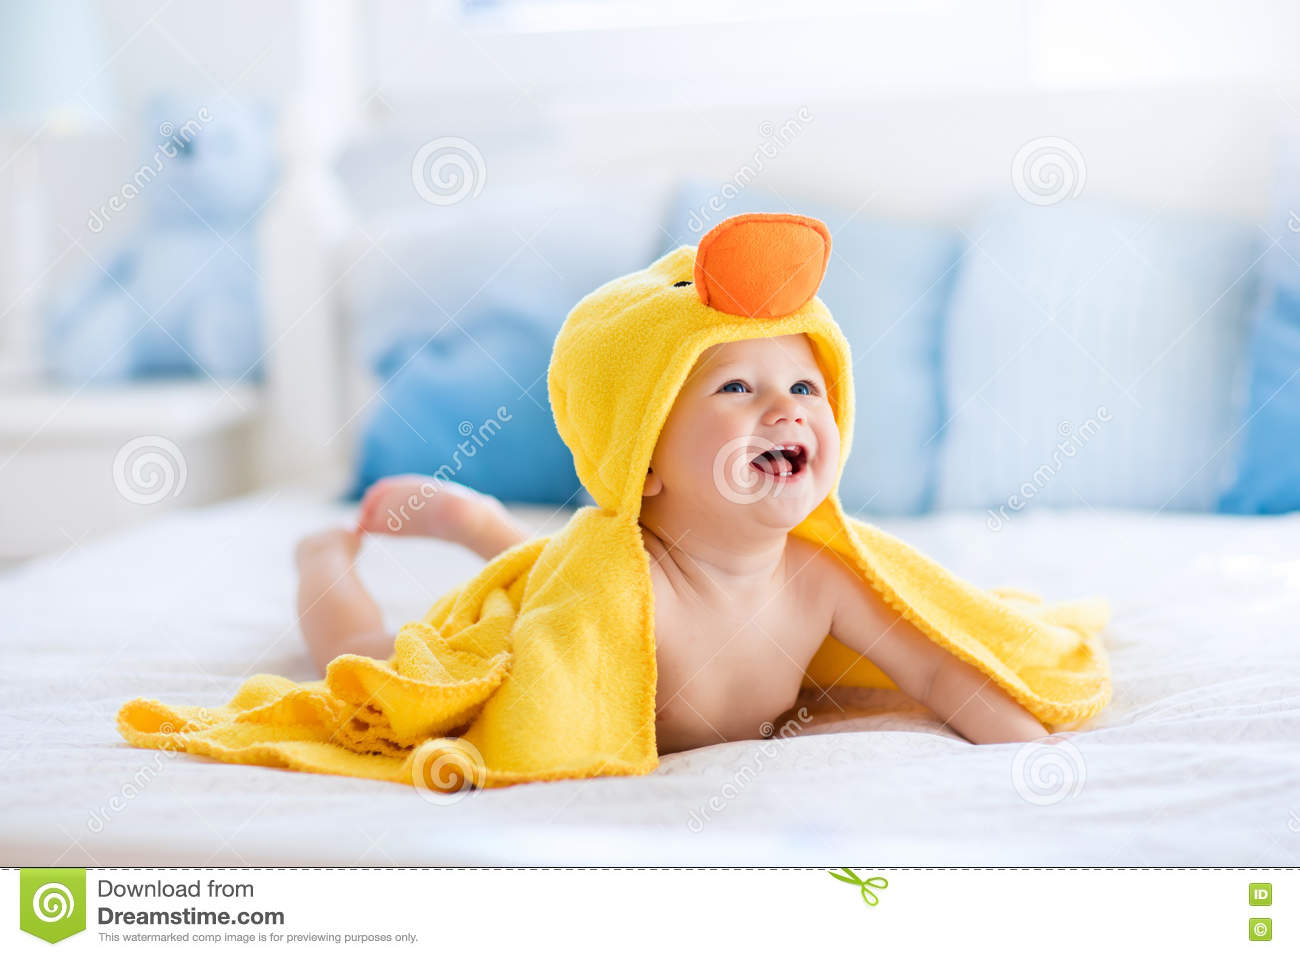 684a48840 Cute Baby After Bath In Yellow Duck Towel Stock Image - Image of ...